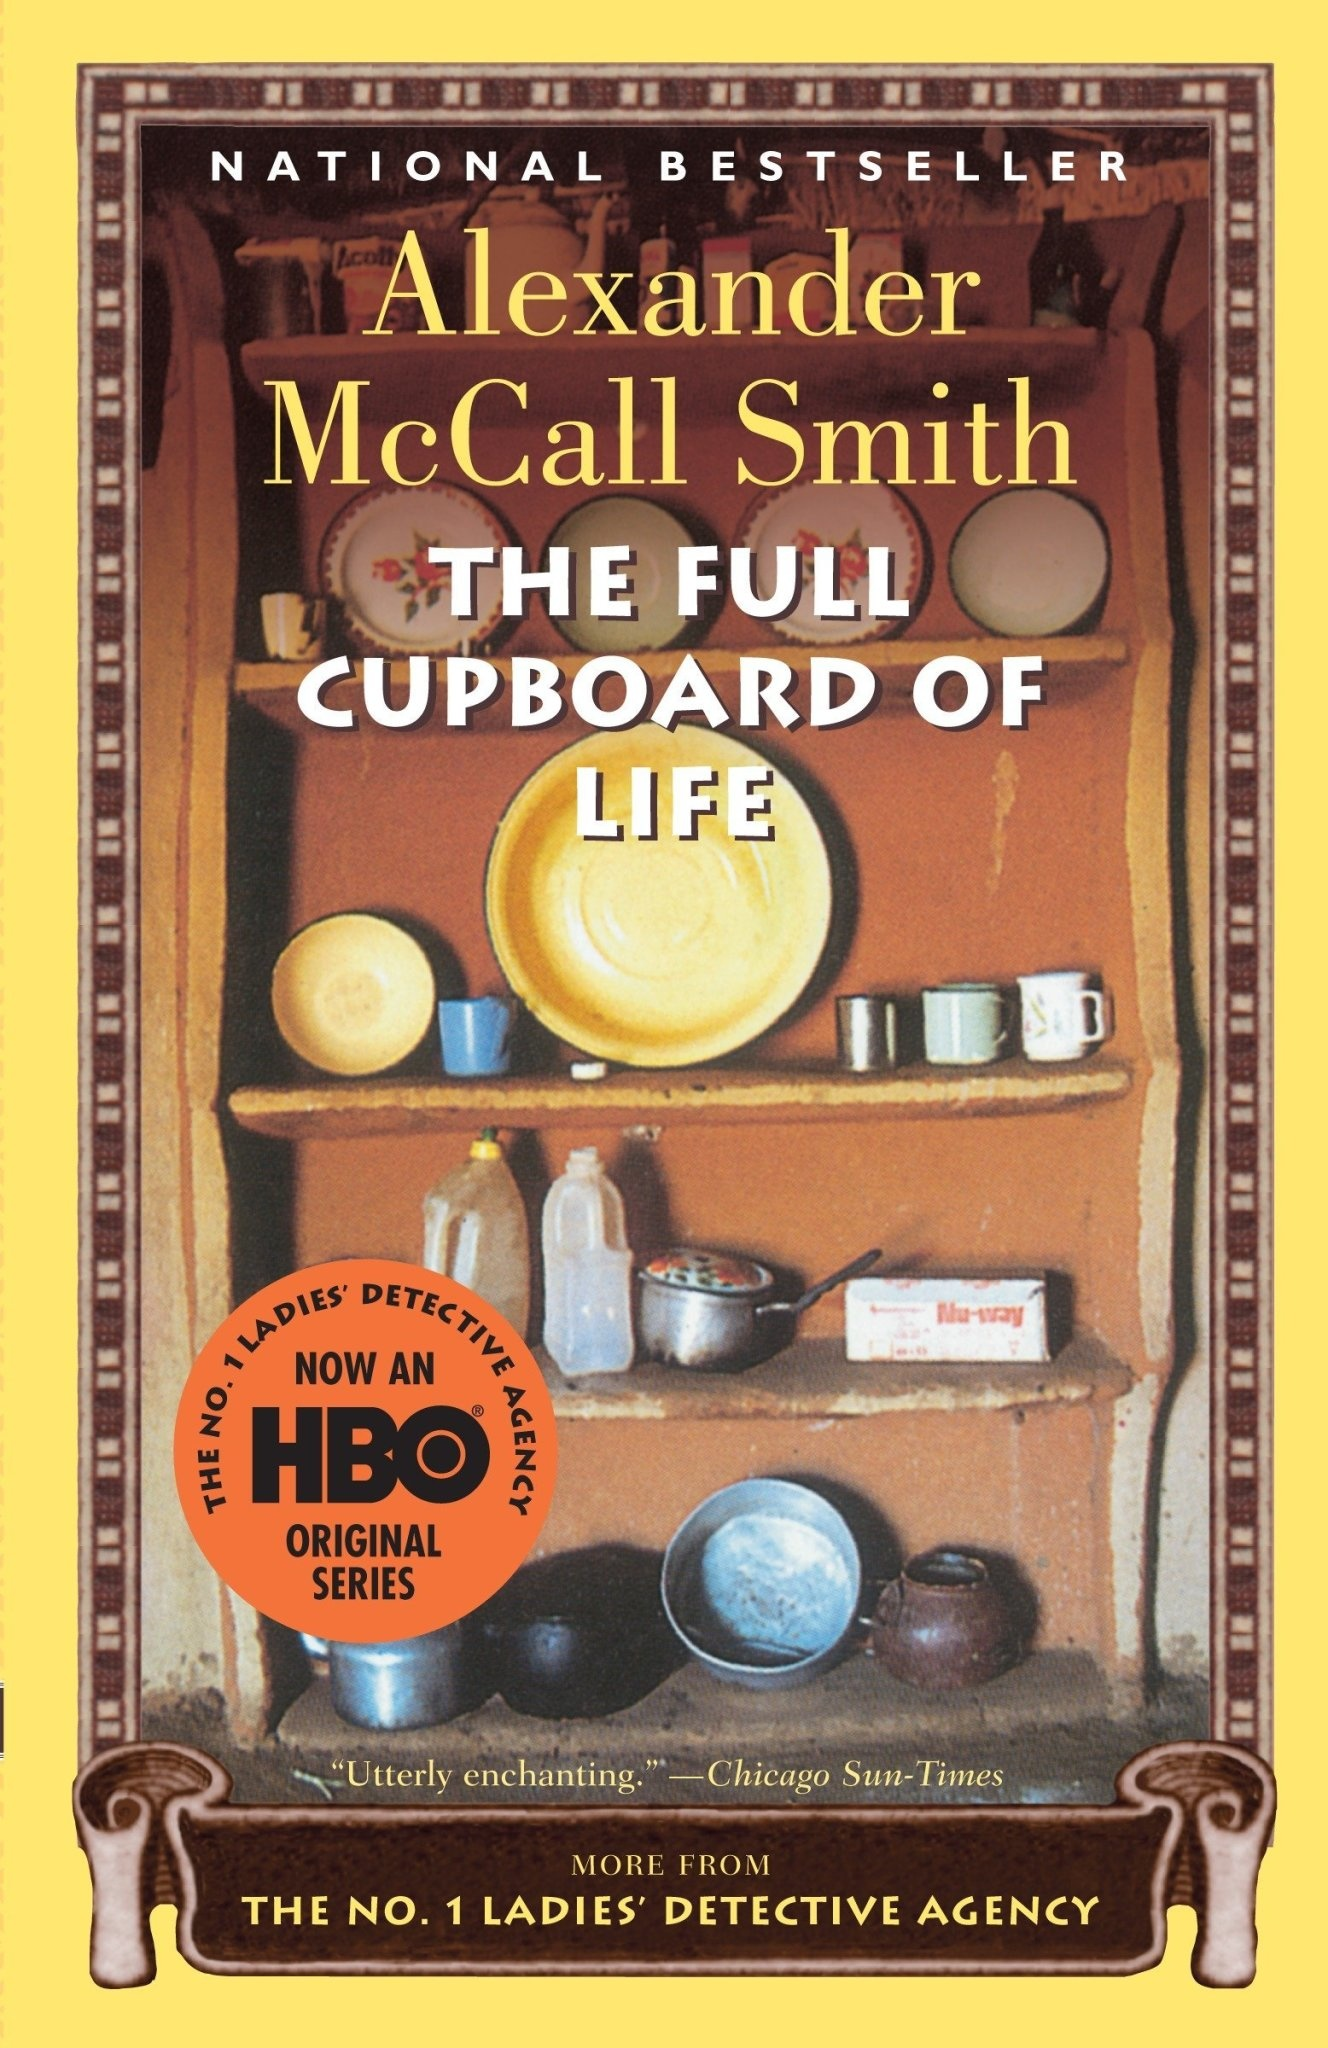 The Full Cupboard of Life (The No. 1 Ladies Detective Agency series)